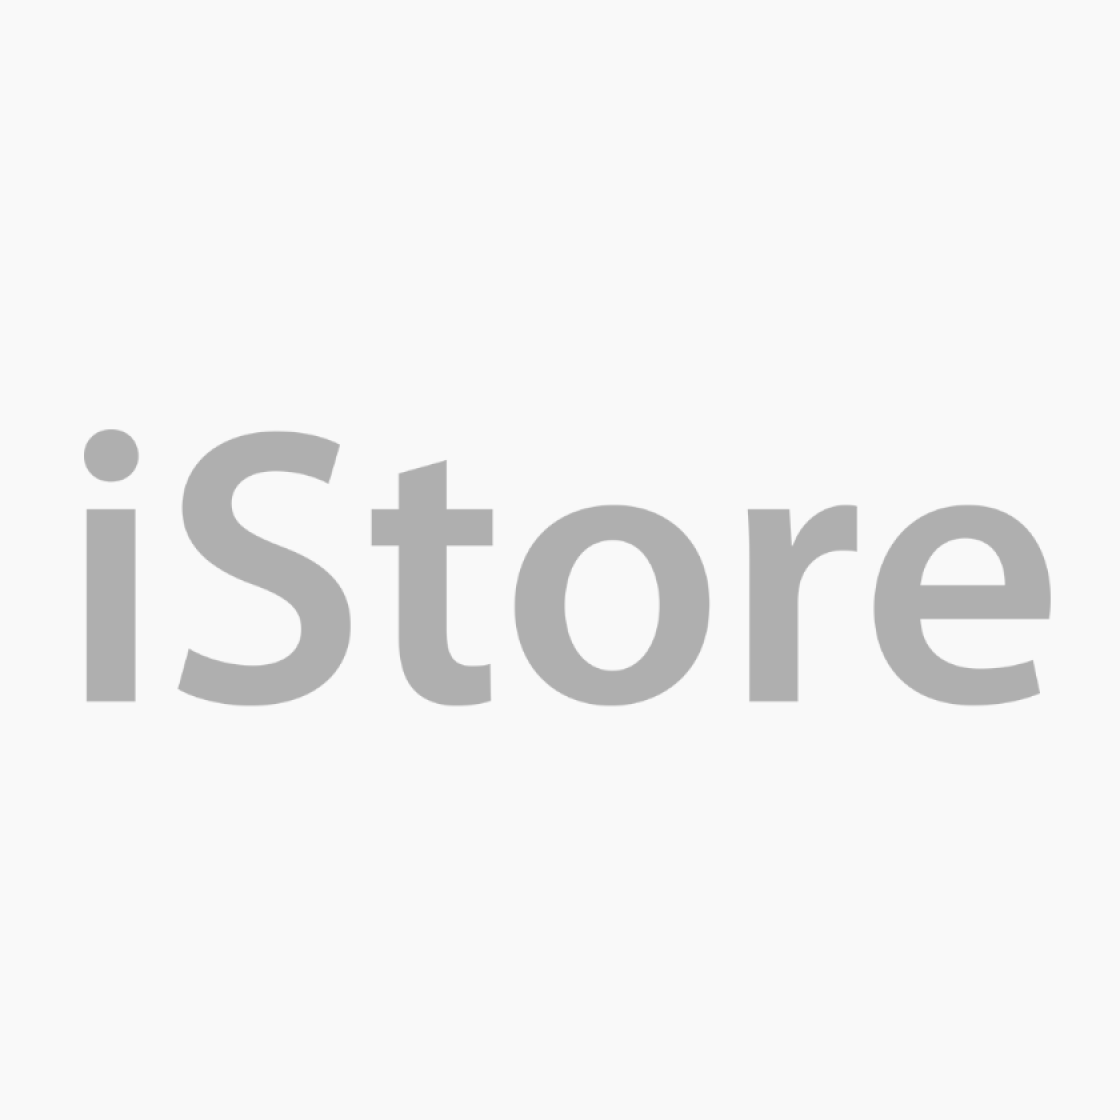 Rotor Riot v2 Mobile Gaming/Drone Controller